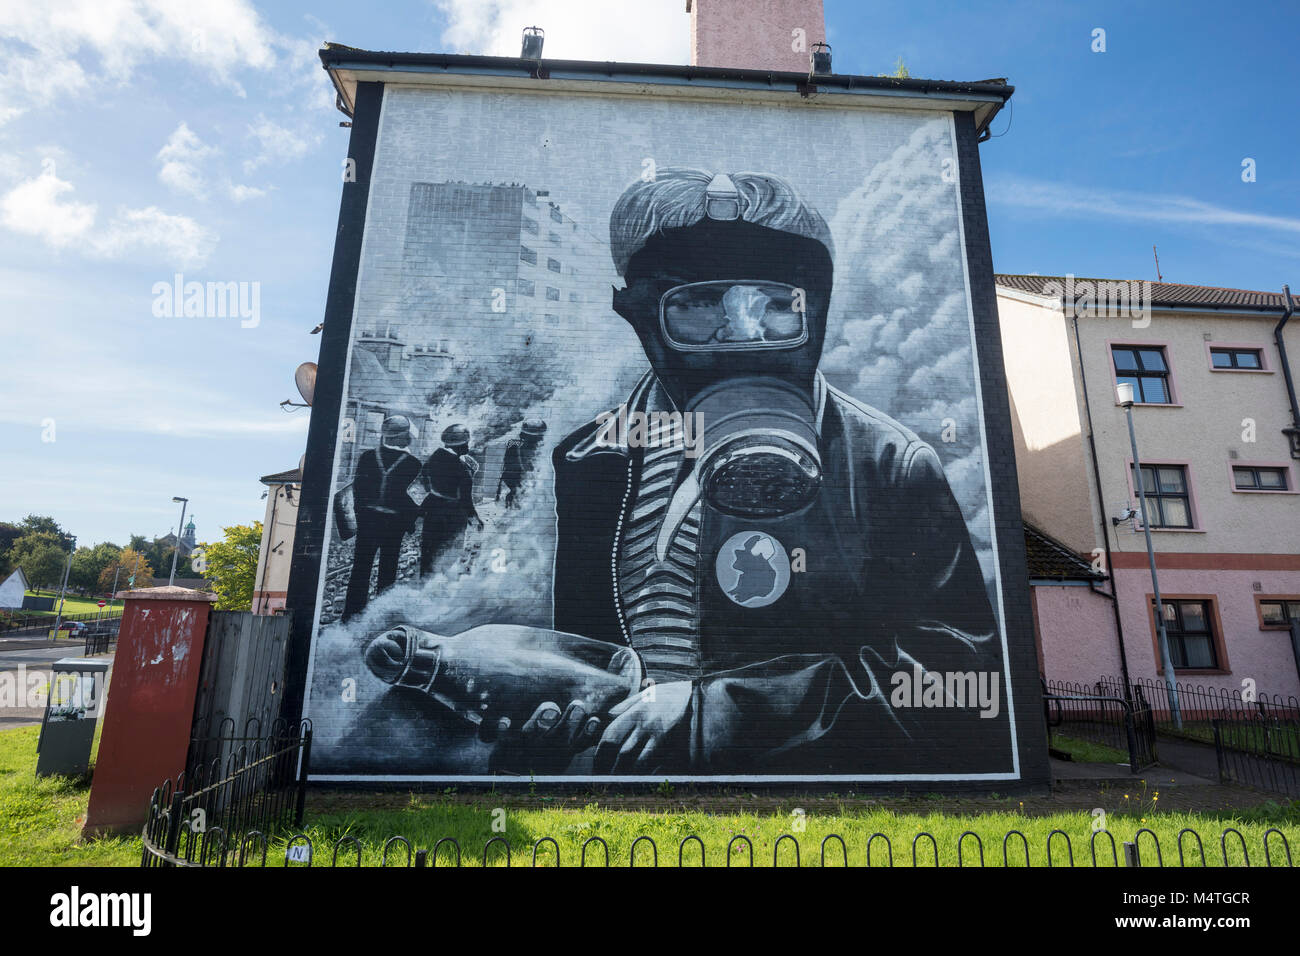 Republican mural of a petrol bomber, Bogside, Derry city, County Derry, Northern Ireland. Stock Photo